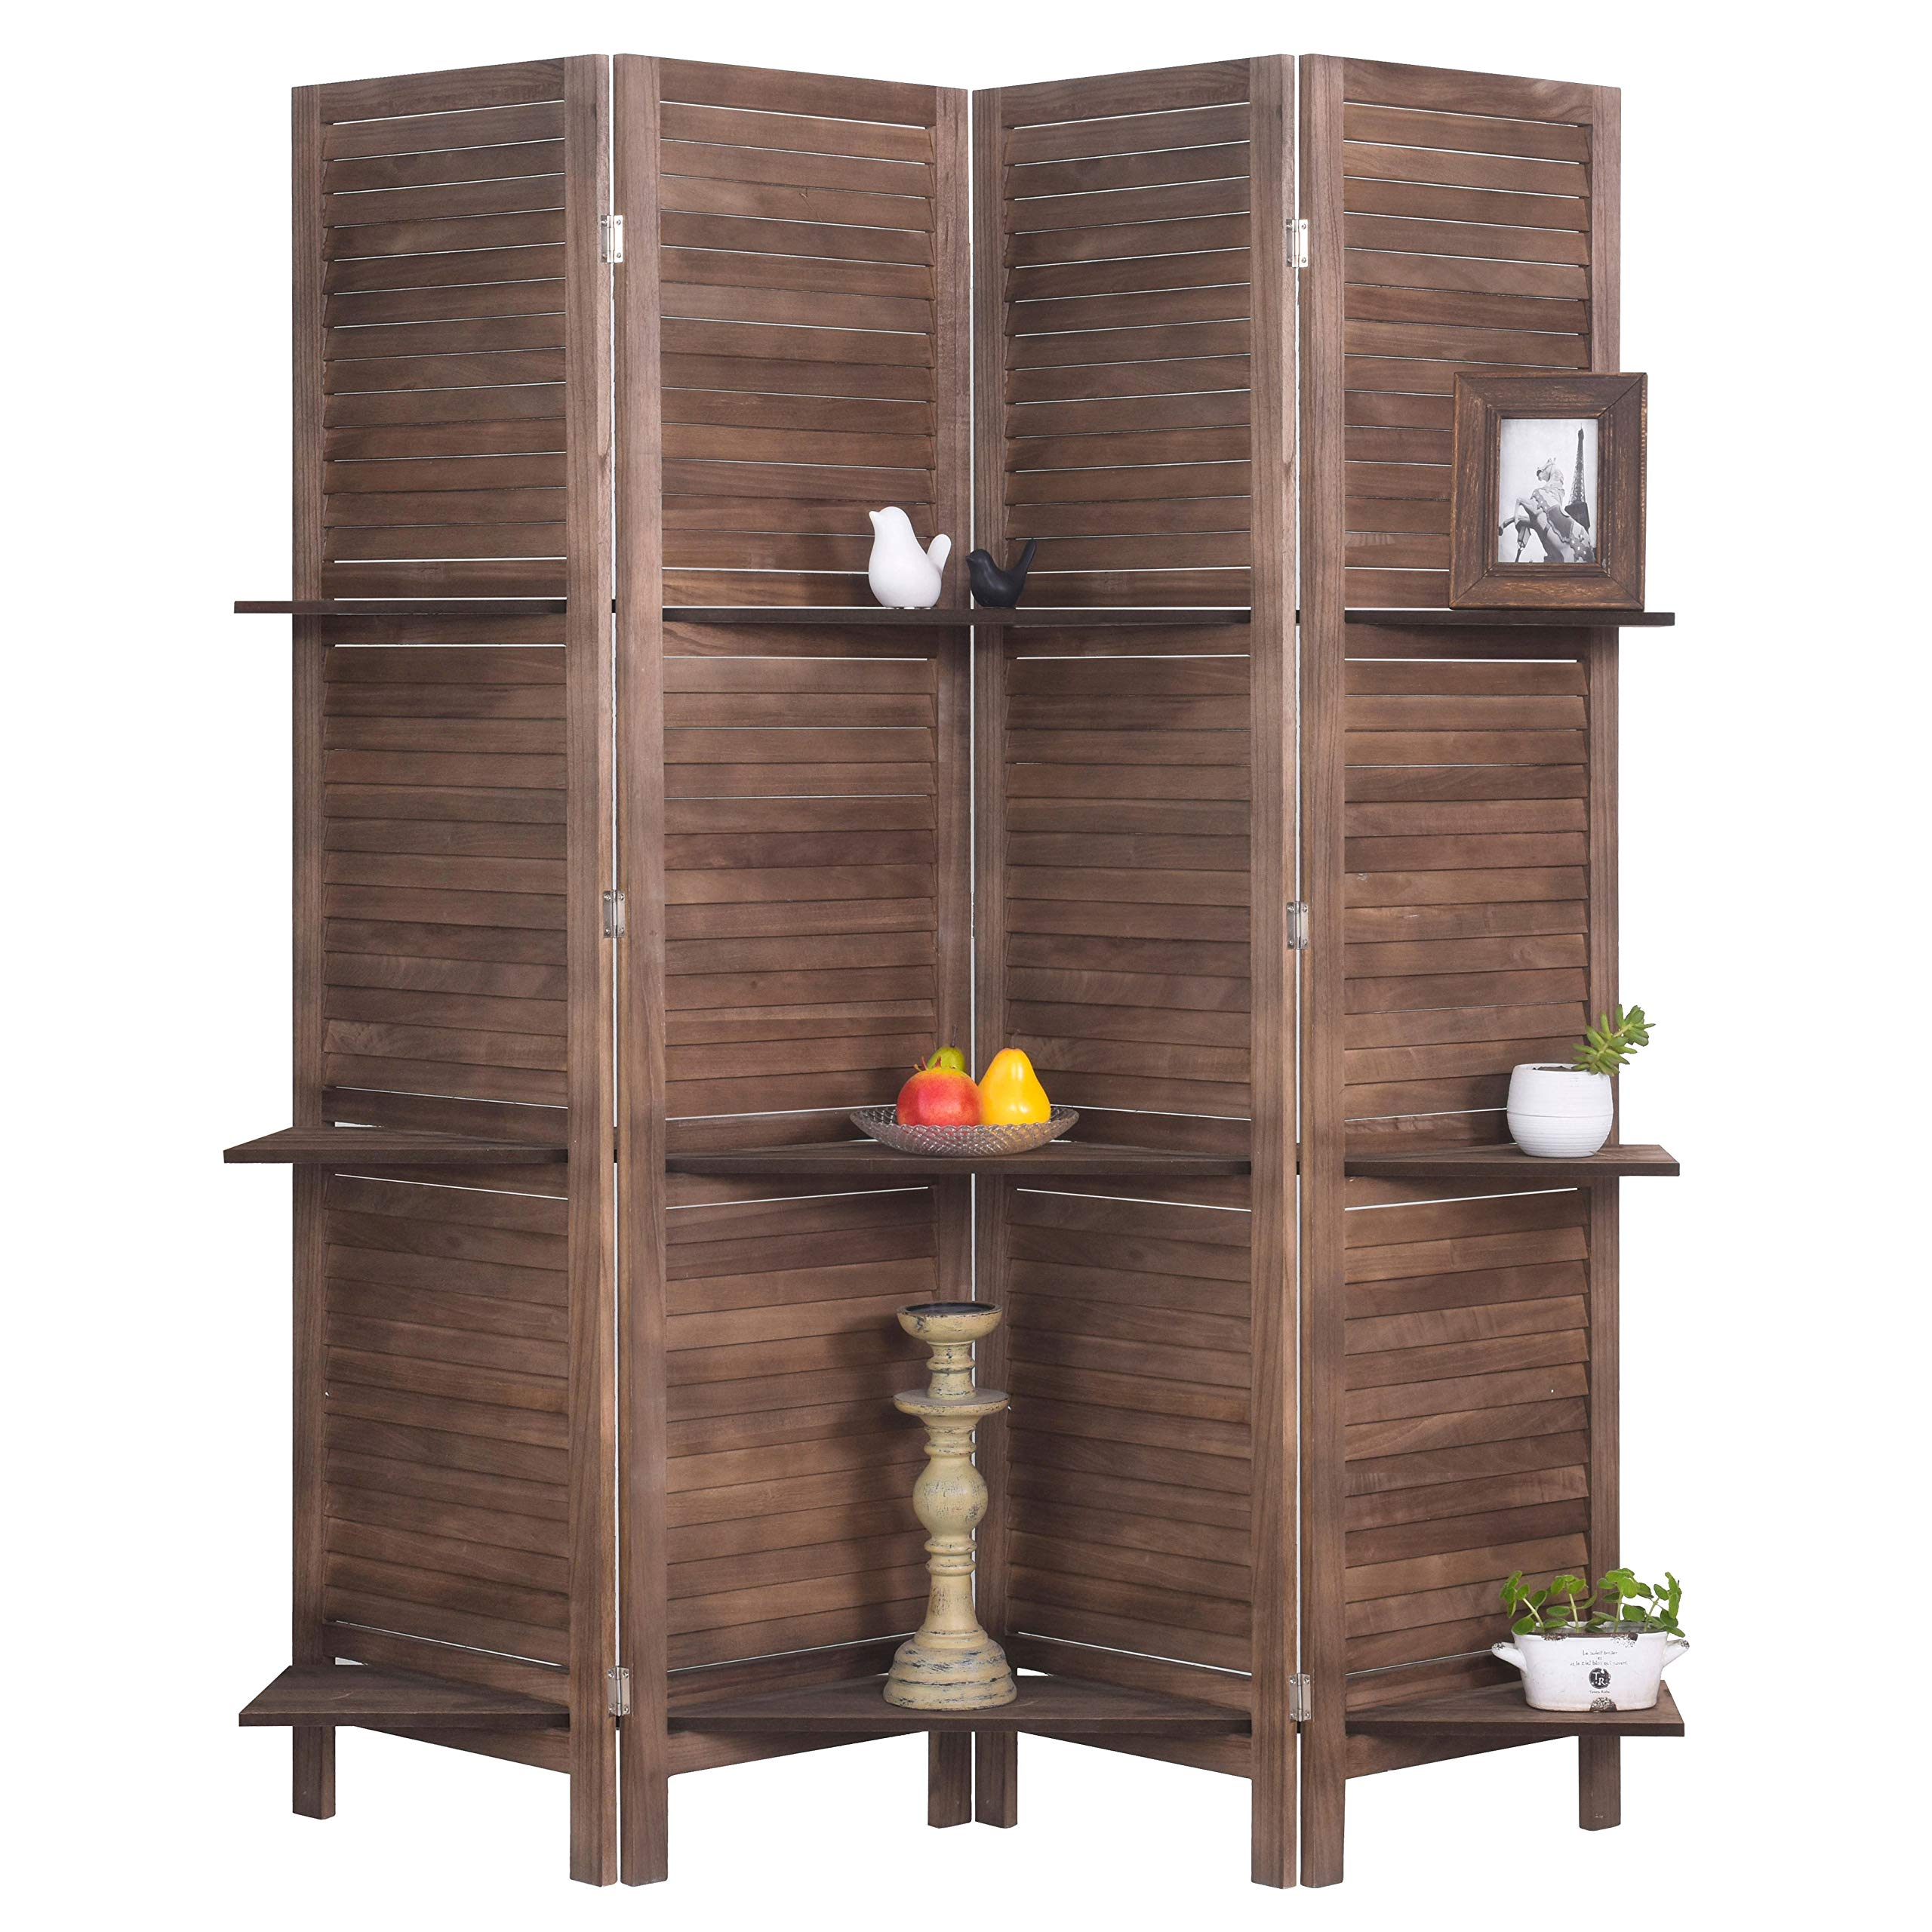 RHF 4 Panel 5.6 Ft Tall Partition Wood Room Divider, Wood Folding Room Divider Screens, Panel Divider&Room Dividers, Room Dividers and Folding Privacy Screens with Shelves(4 Panel,Brown)